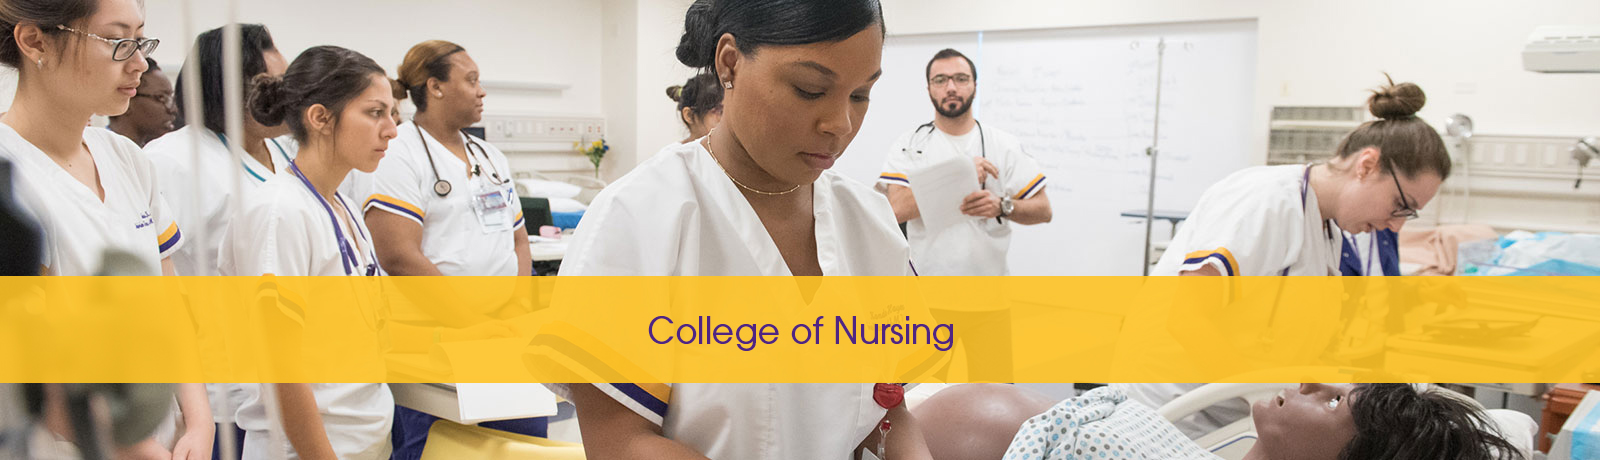 college of nursing banner